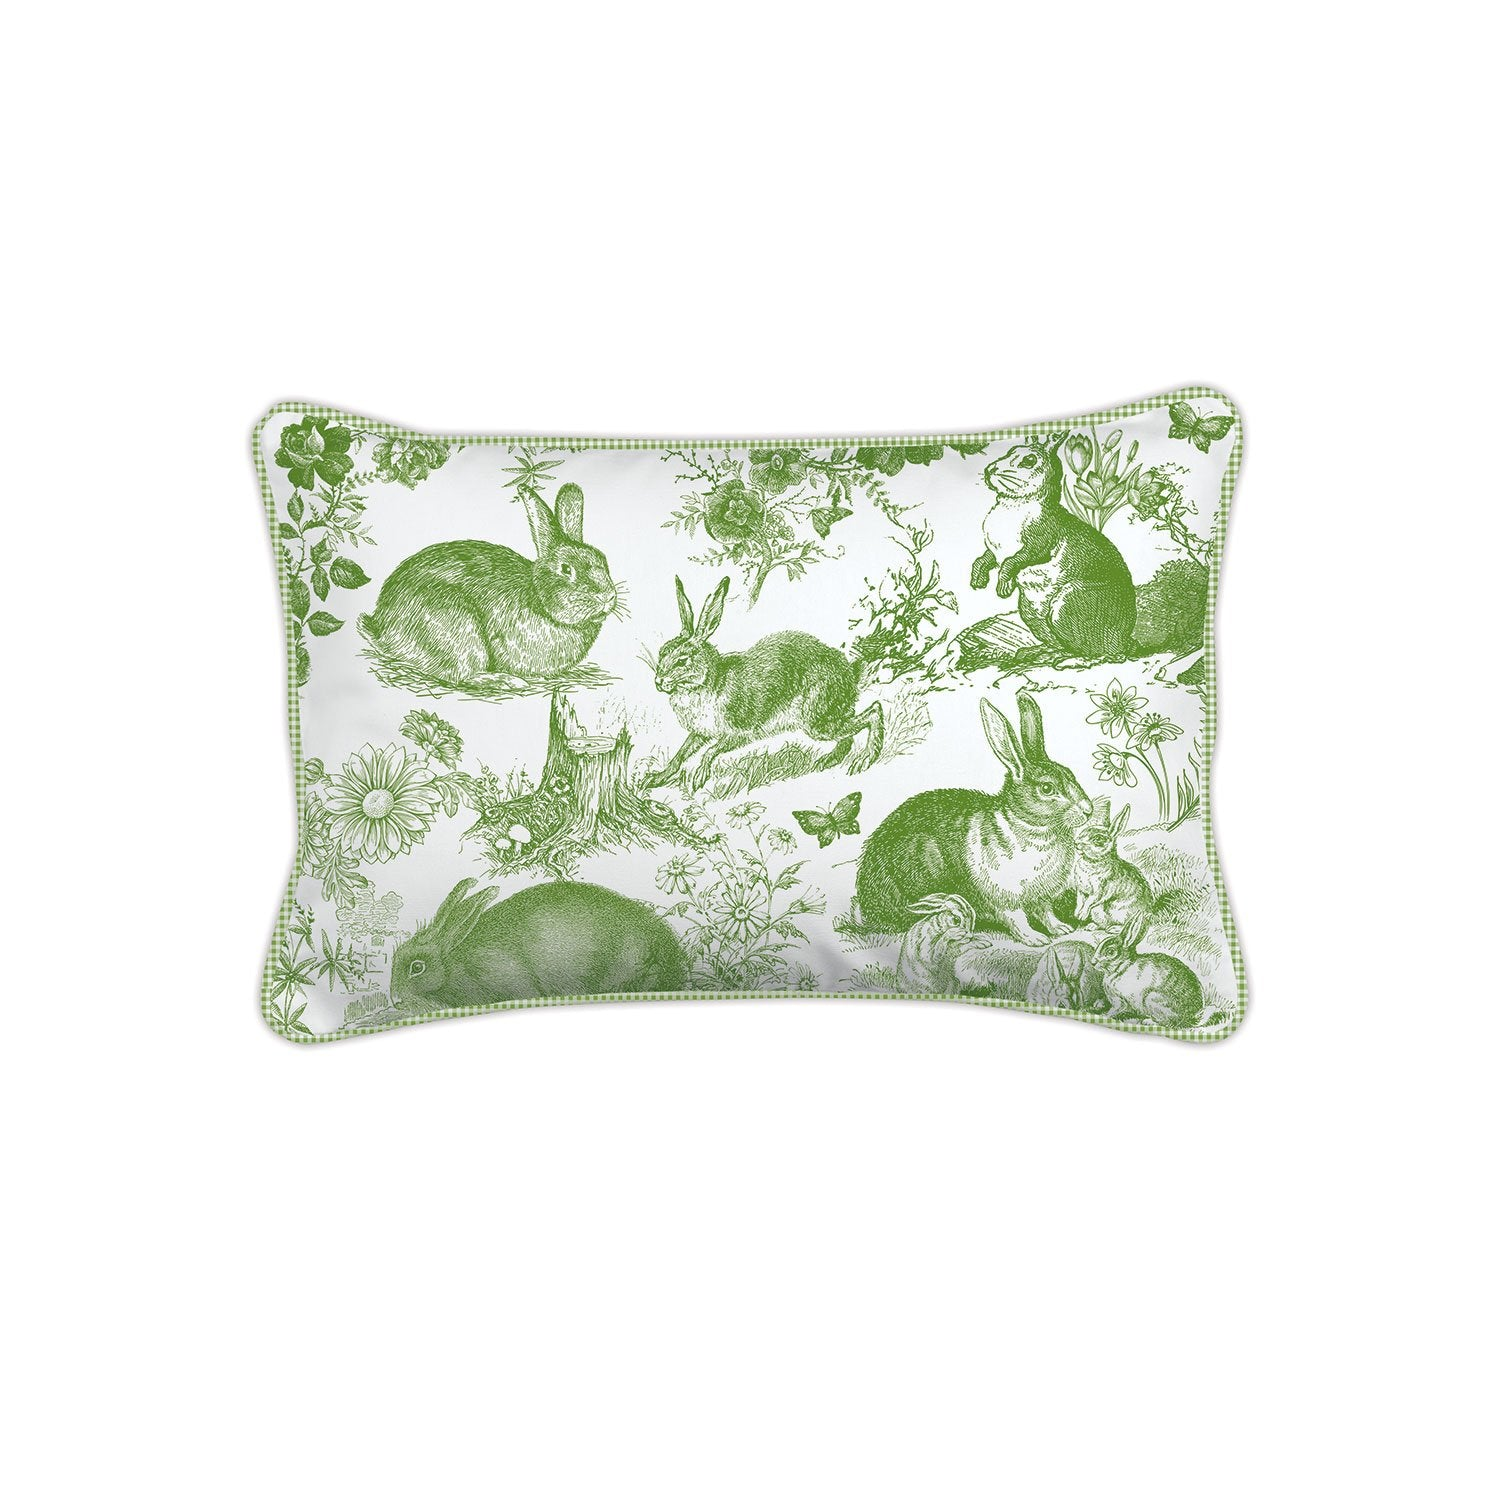 Bunny Toile Rectangular Pillow